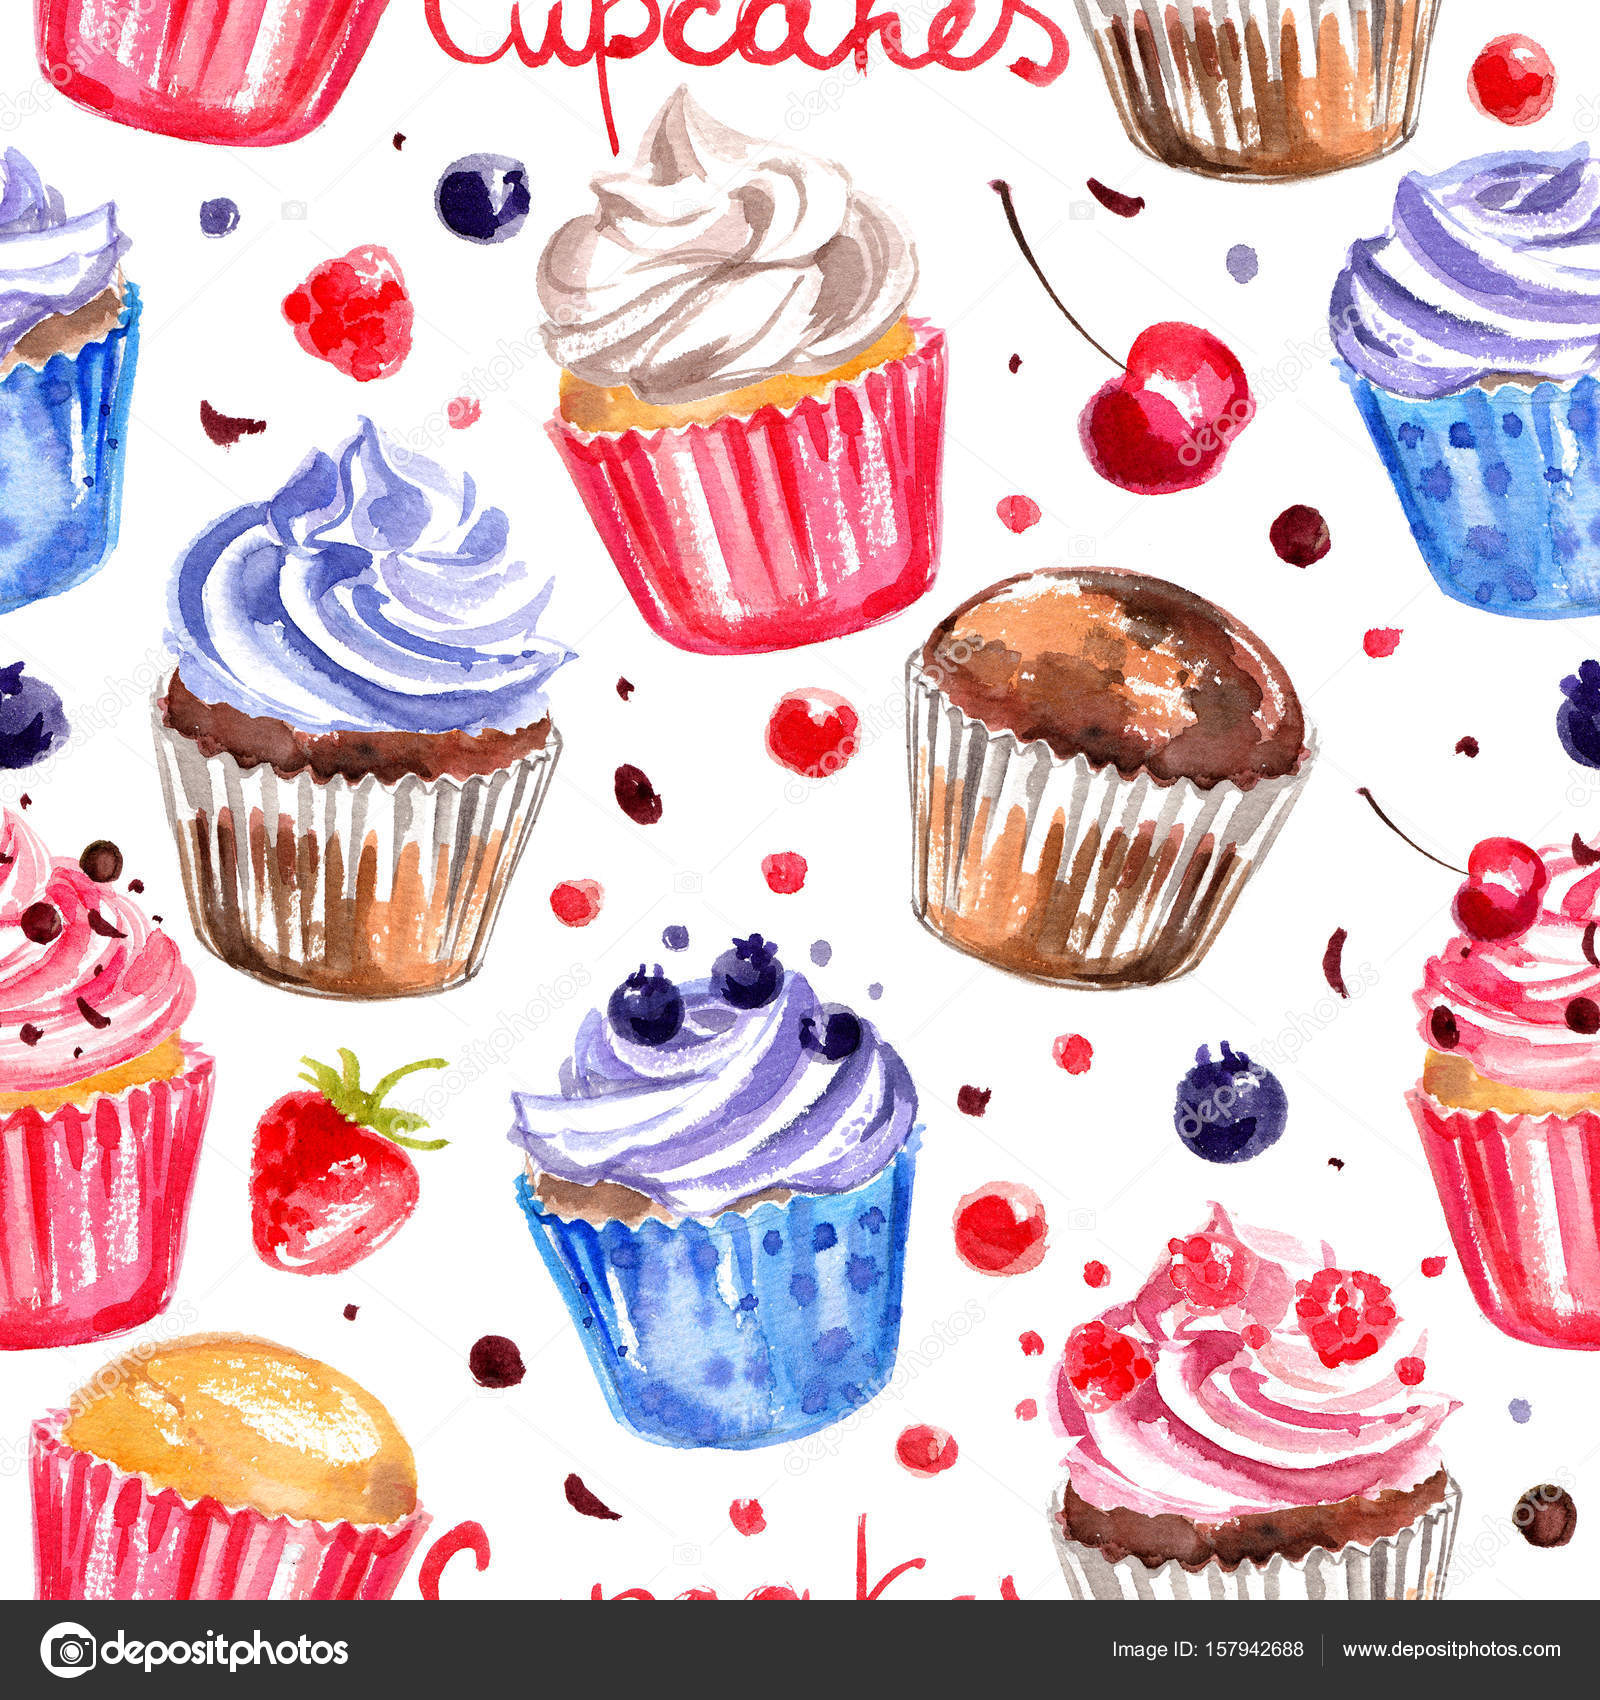 Pattern Cupcakes Painted With Watercolors On White Background Colorful Cakes For Holiday Photo By Vaneevaisgmail